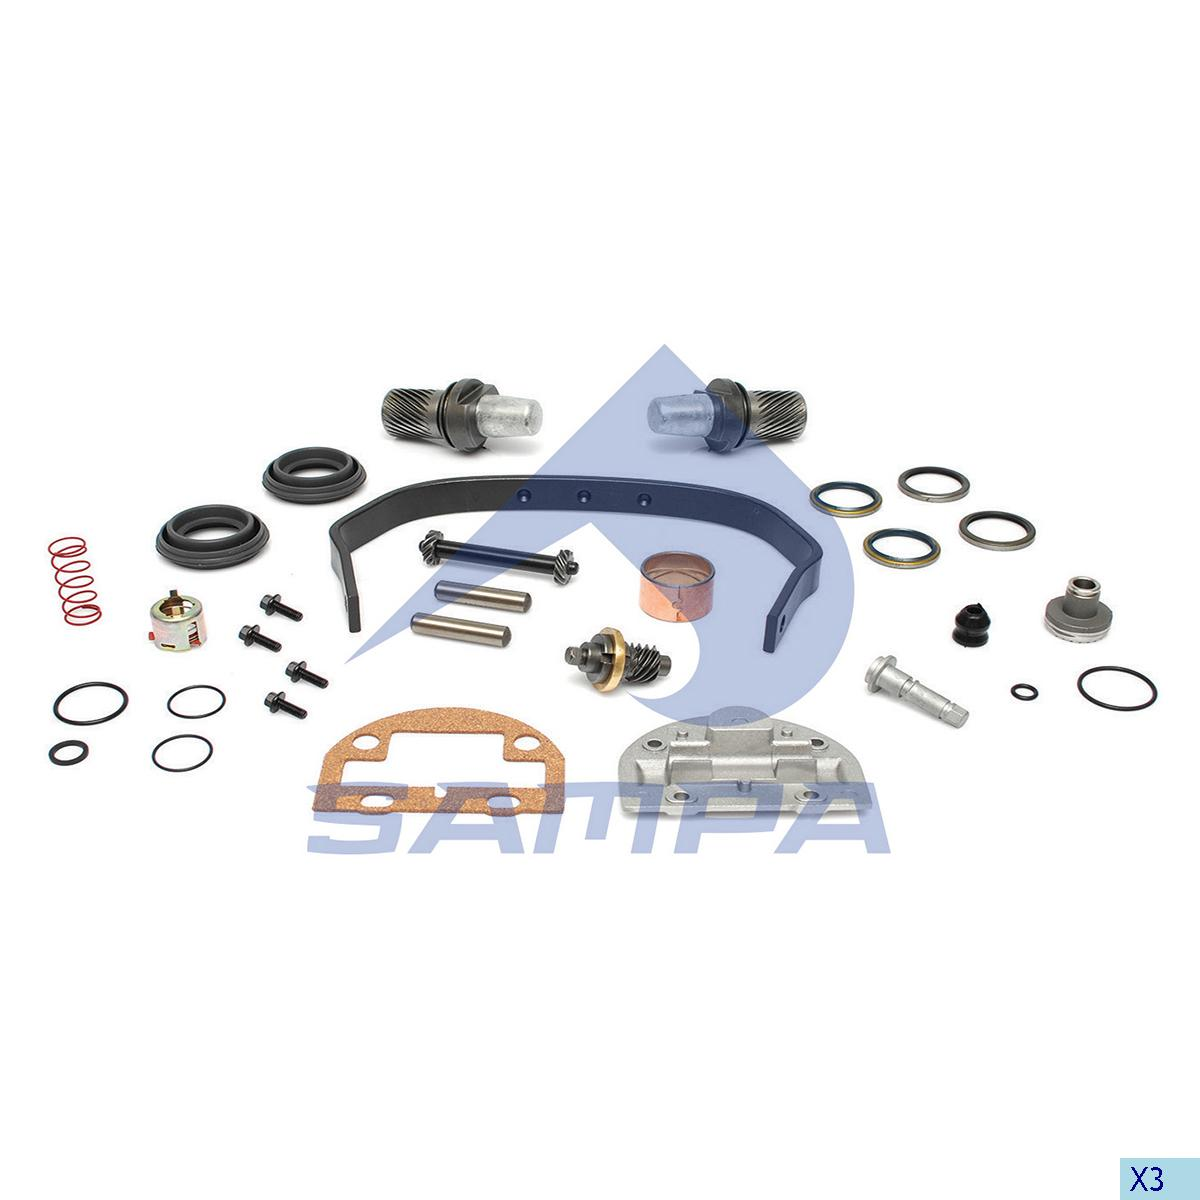 Repair Kit, Brake Adjuster, Volvo, Brake